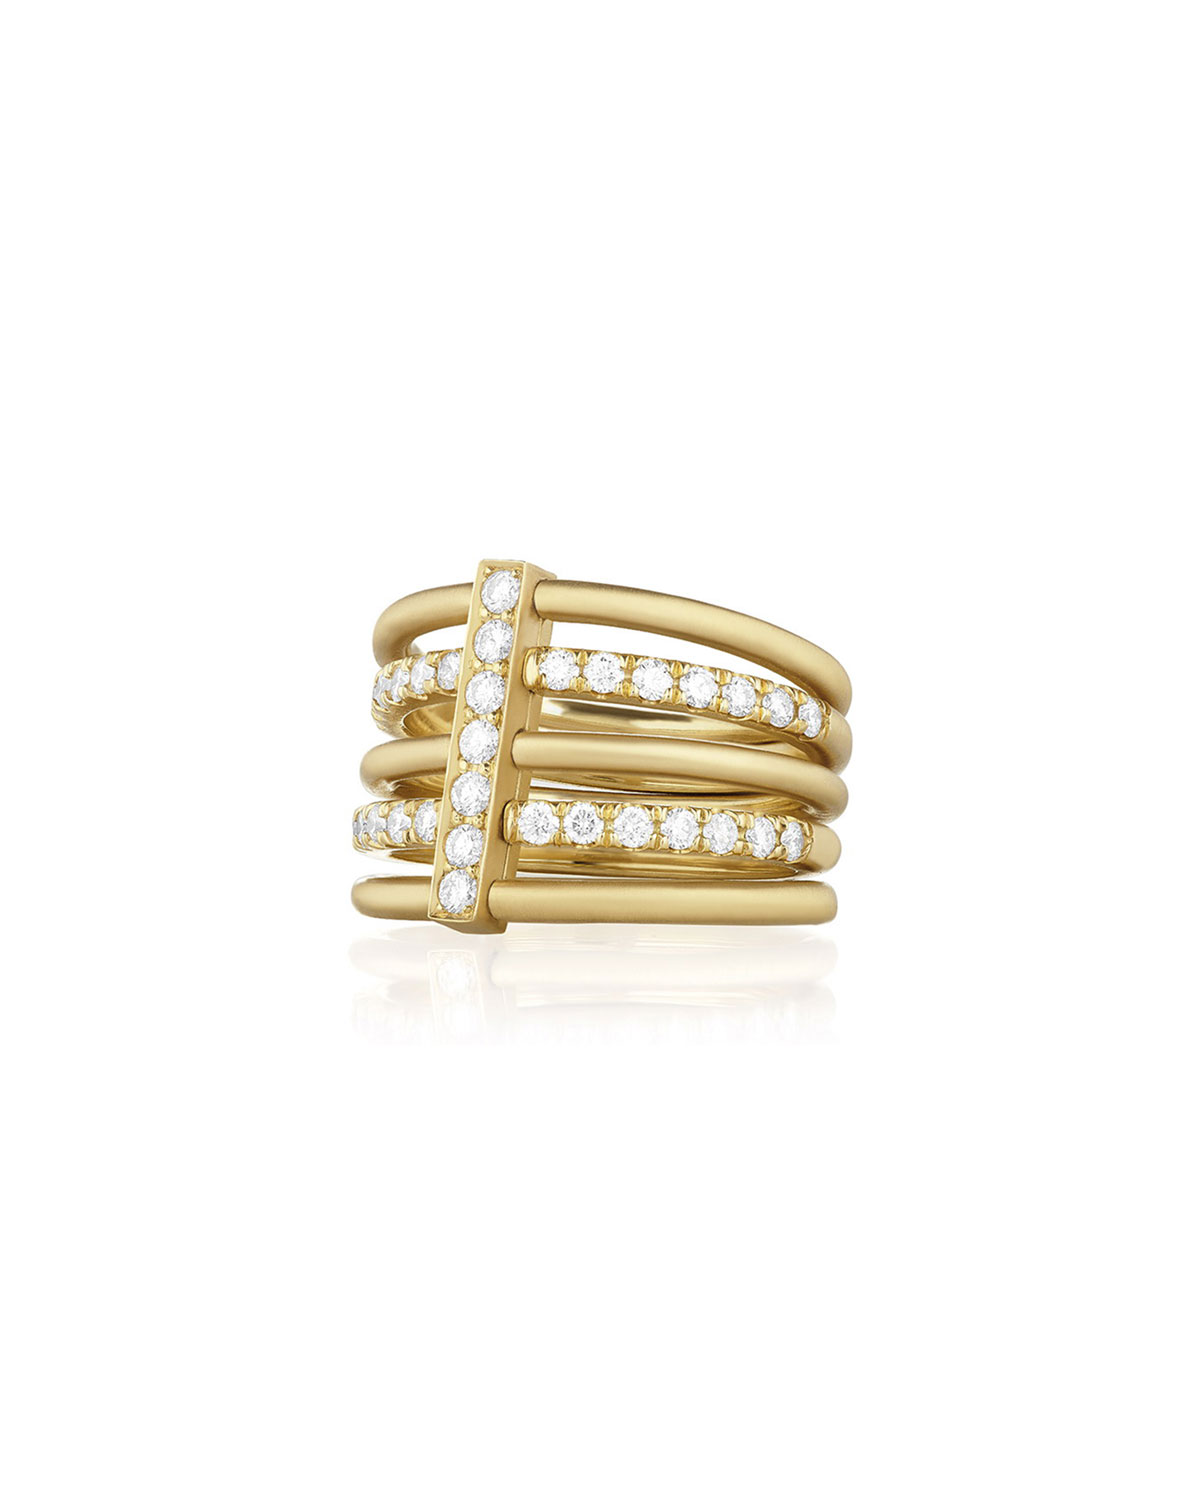 18k Moderne 3-Plain and 2-Pave Ring with Diamonds